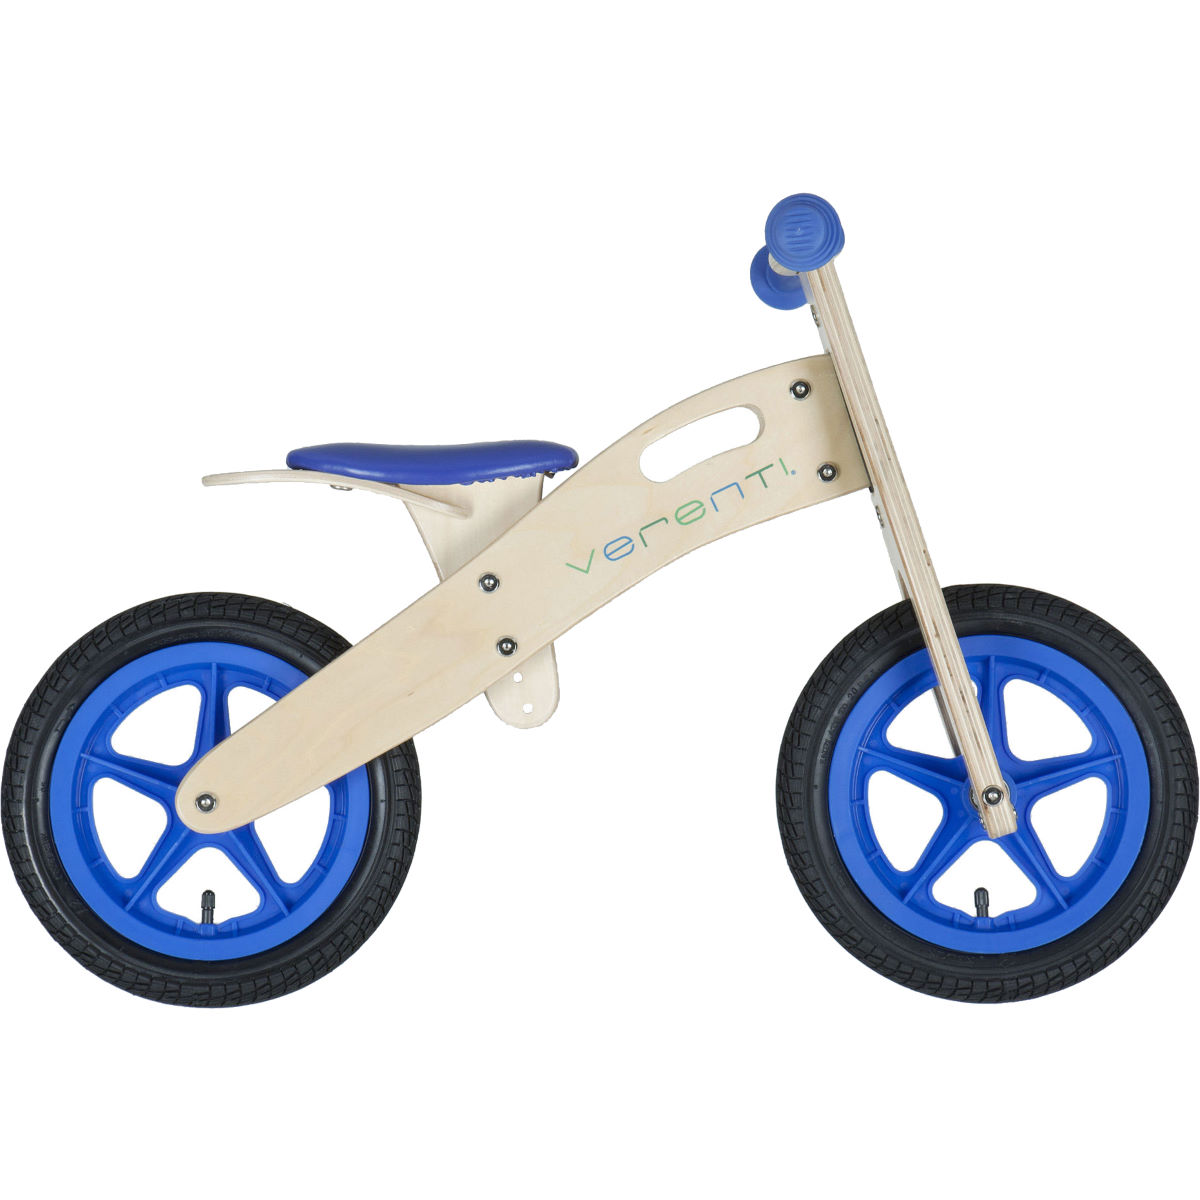 Draisienne Verenti Woody Runner - 12'' wheel Wood/Blue Draisiennes 1 à 5 ans